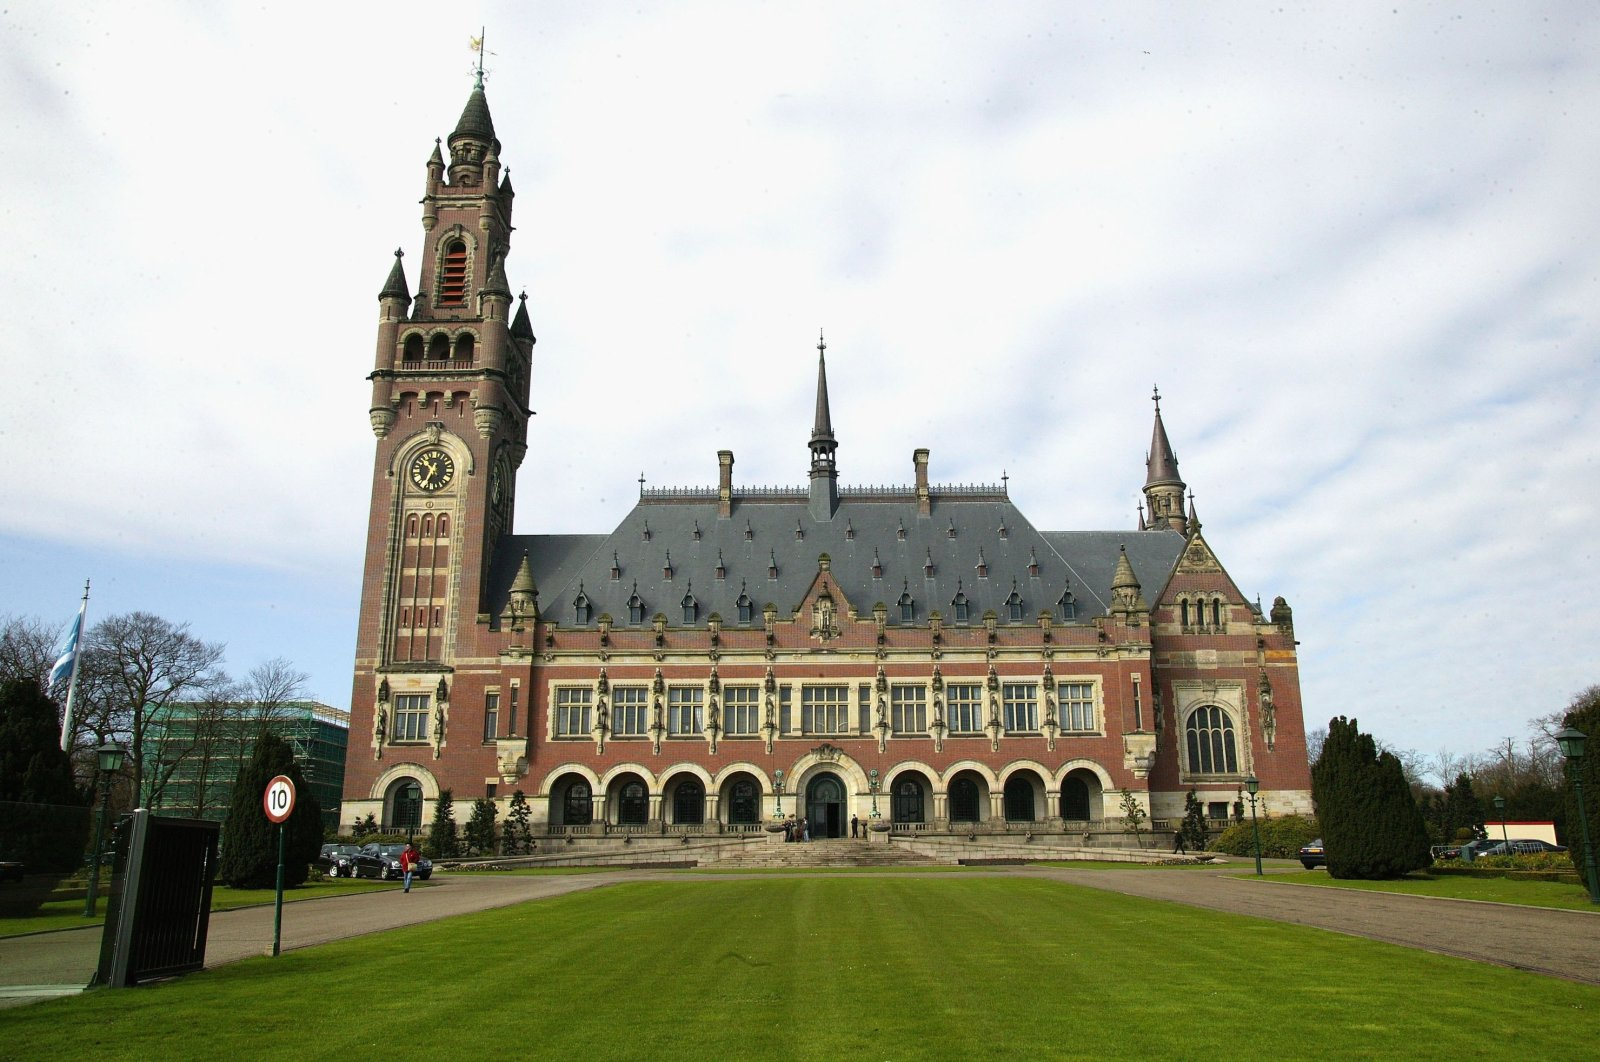 A general view of the International Court of Justice in The Hague, Netherlands, April 12, 2006.  (Getty Images)